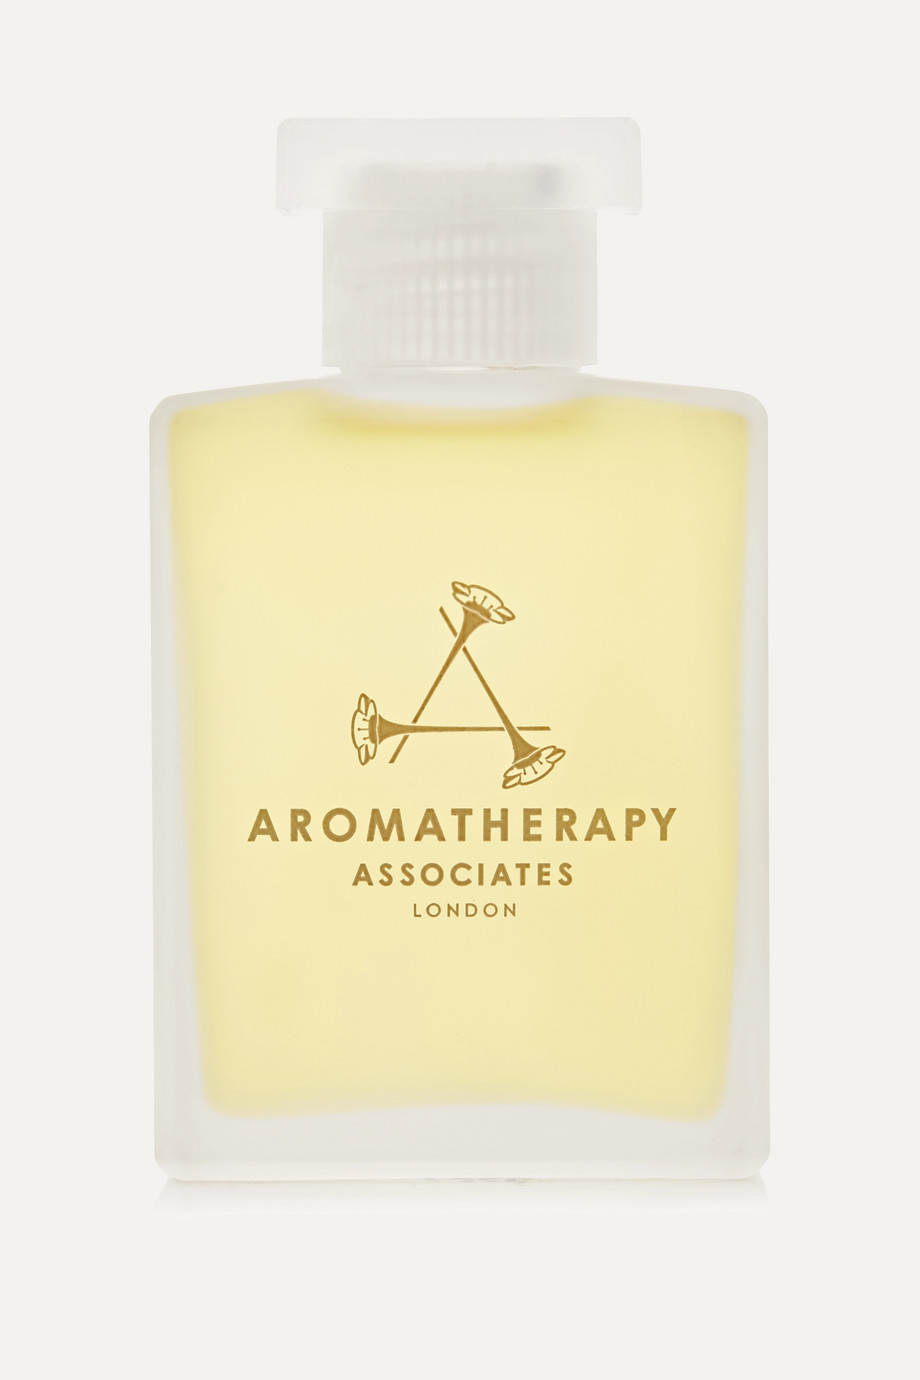 Aromatherapy Associates Light Relax Bath and Shower Oil, 55ml